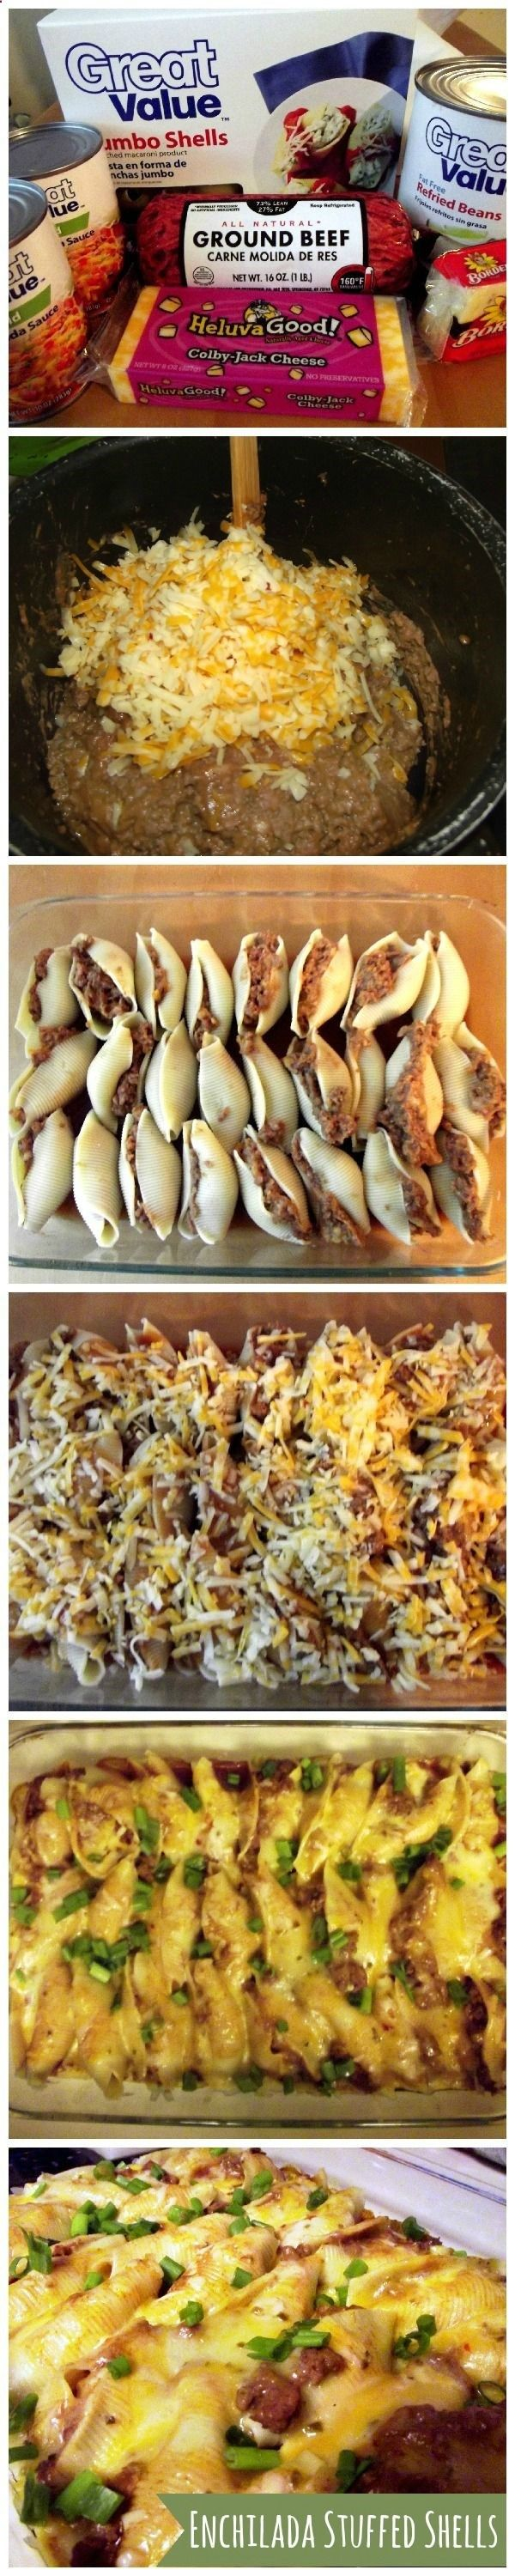 Enchilada Stuffed Shells | Make with ground turkey or ground beef. (Makes a lot - could halve the recipe for dinner.)